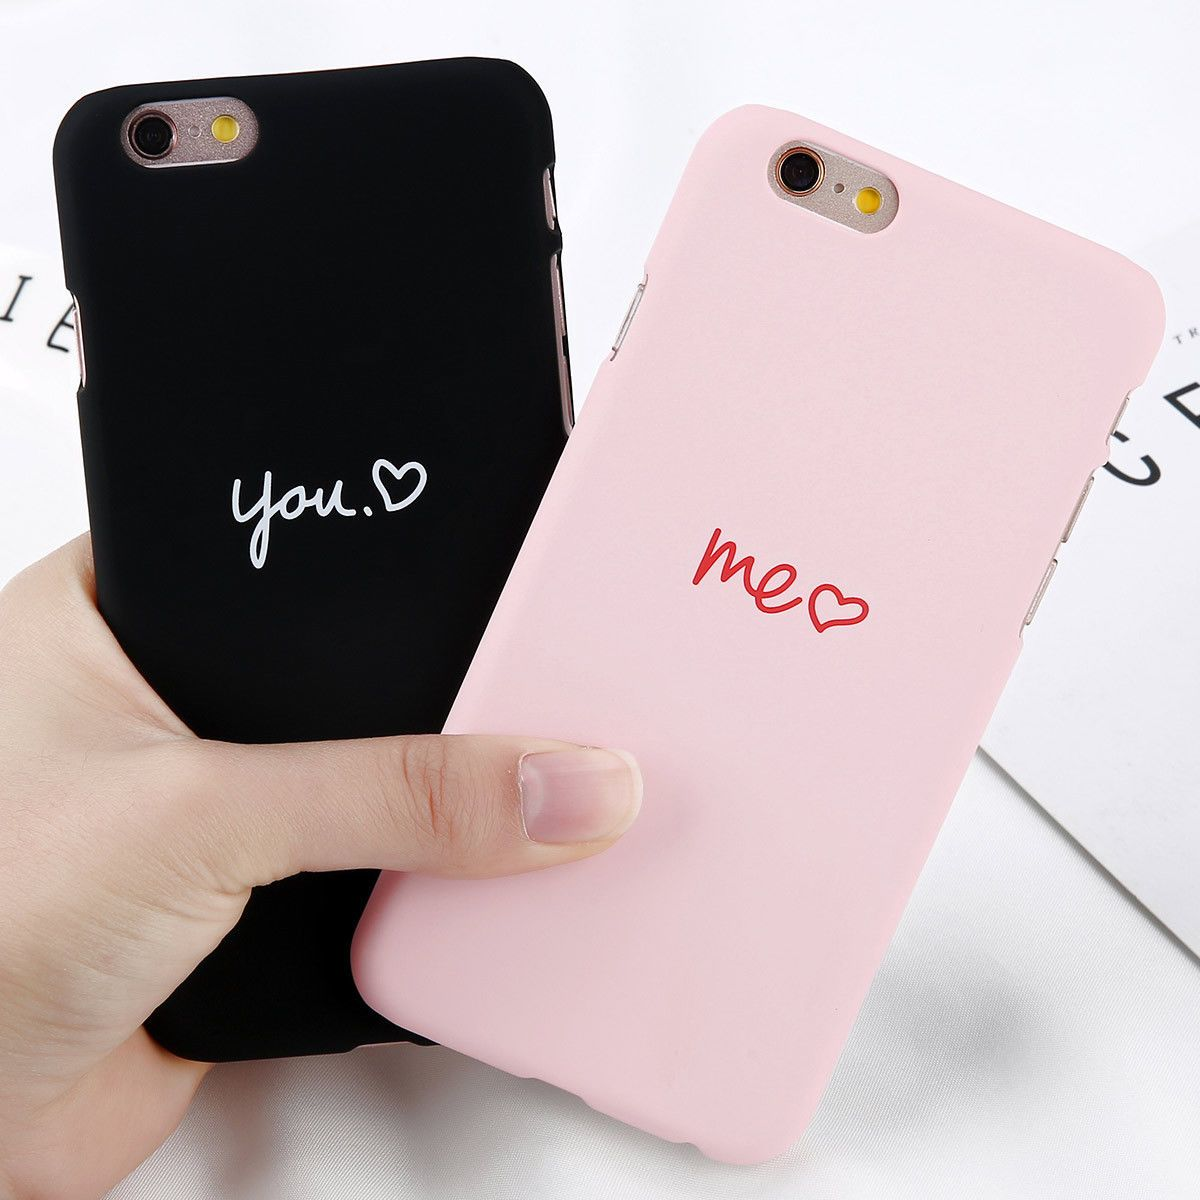 pinterest @surnair16 phone cases in 2019 phone cases, iphonepinterest @surnair16 case for iphone, iphone 7 cases, pink phone cases,